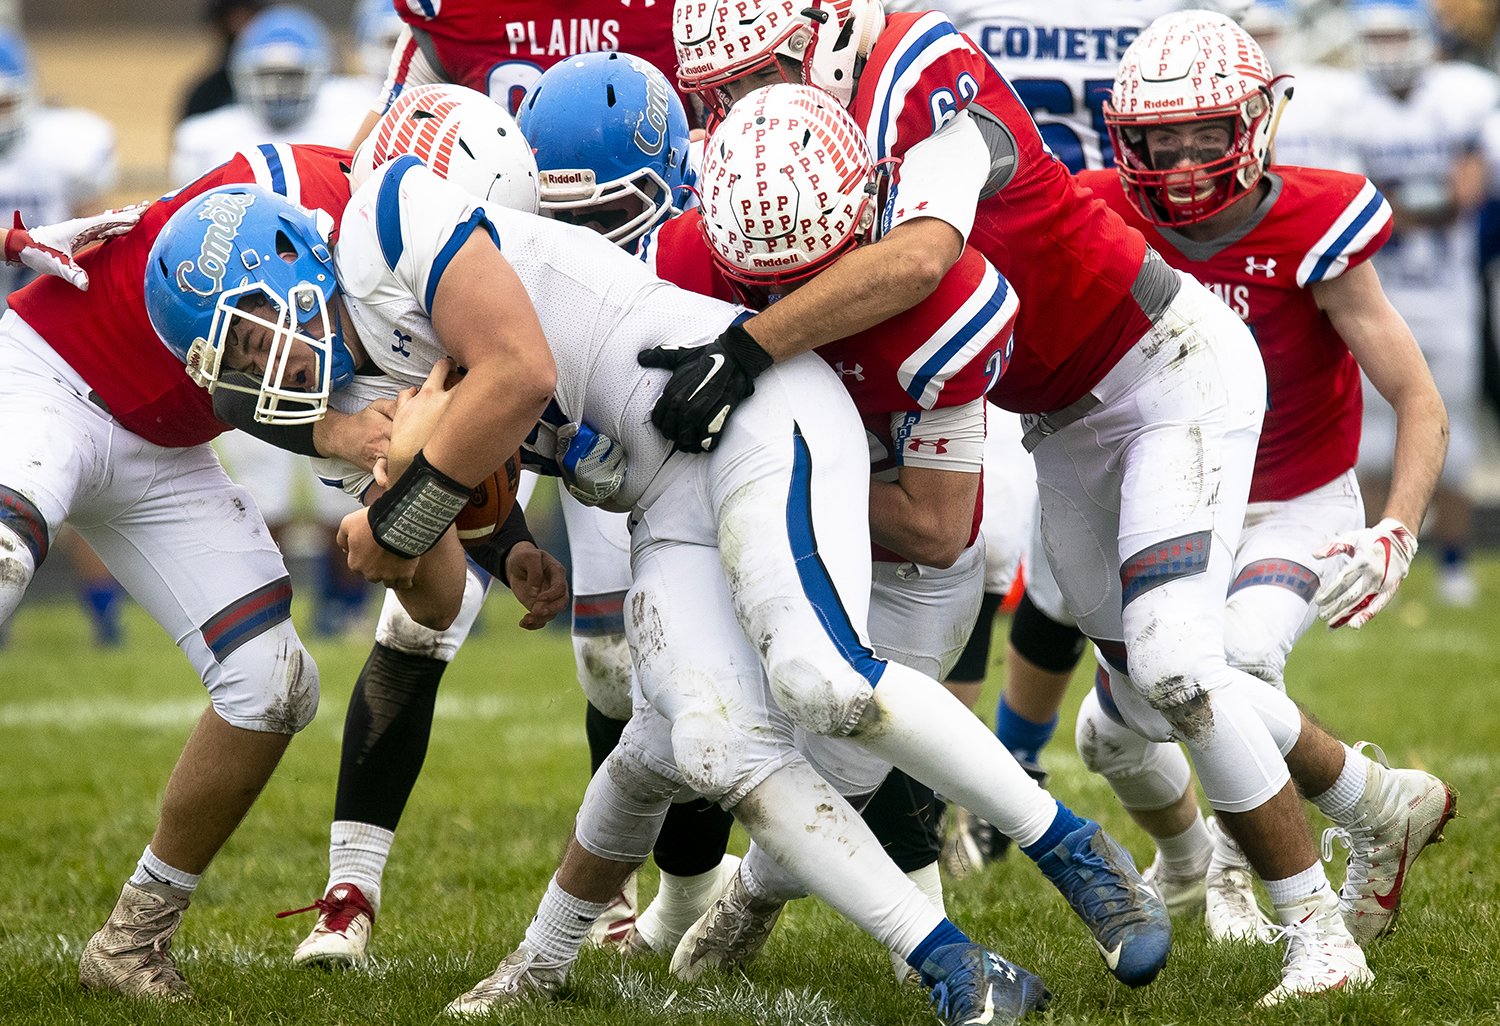 Pleasant Plains' defense brings down Greenville's Jack Woods during the Class 2A playoff game Saturday, Nov. 3, 2018 at Pleasant Plains High School in Pleasant Plains, Ill. [Rich Saal/The State Journal-Register]